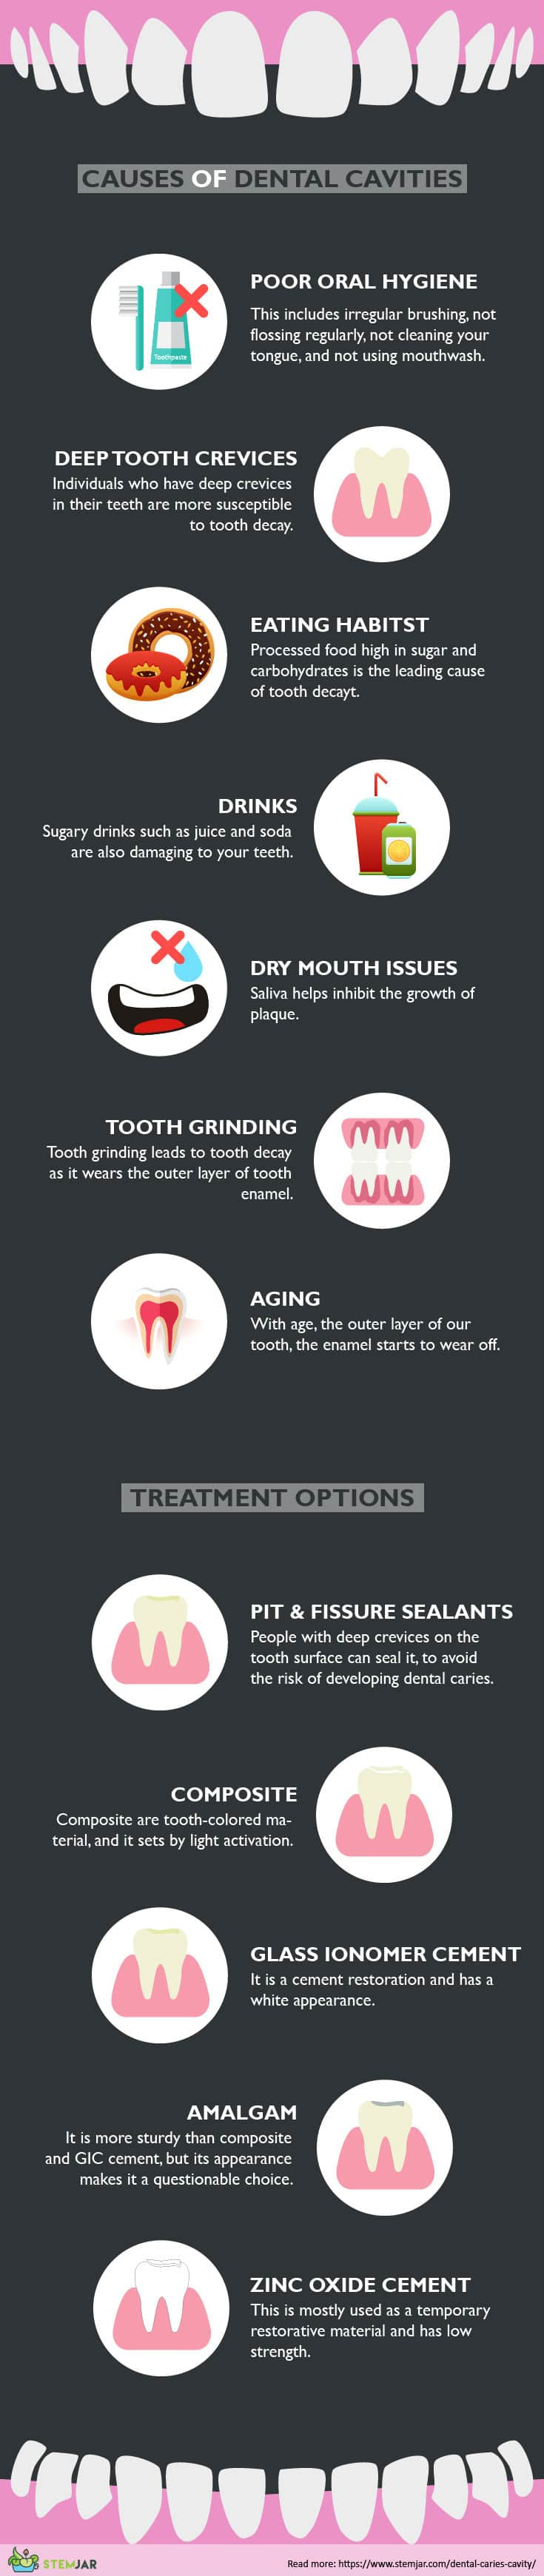 Dental Caries infographic